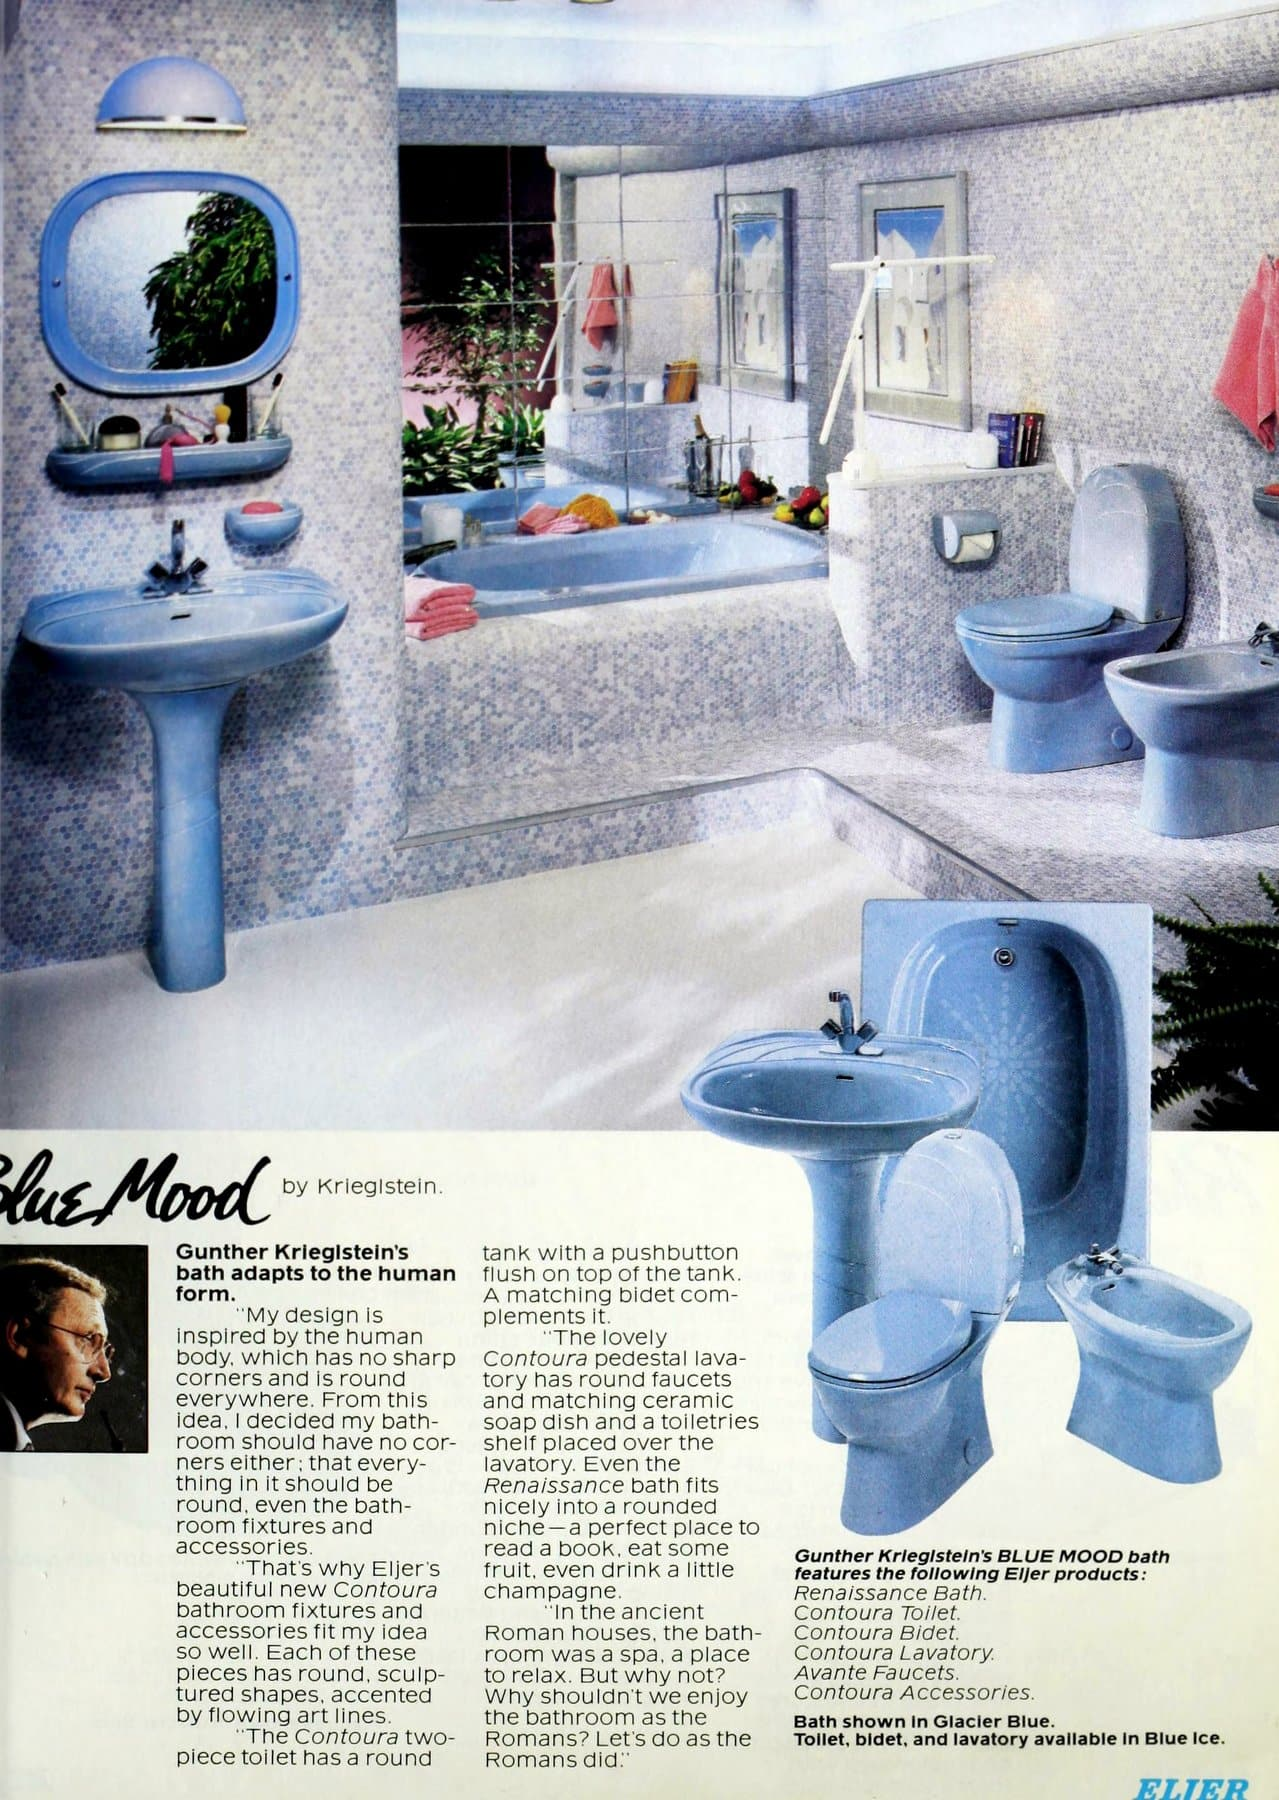 Blue Mood bathroom decor with rounded everything (1986)